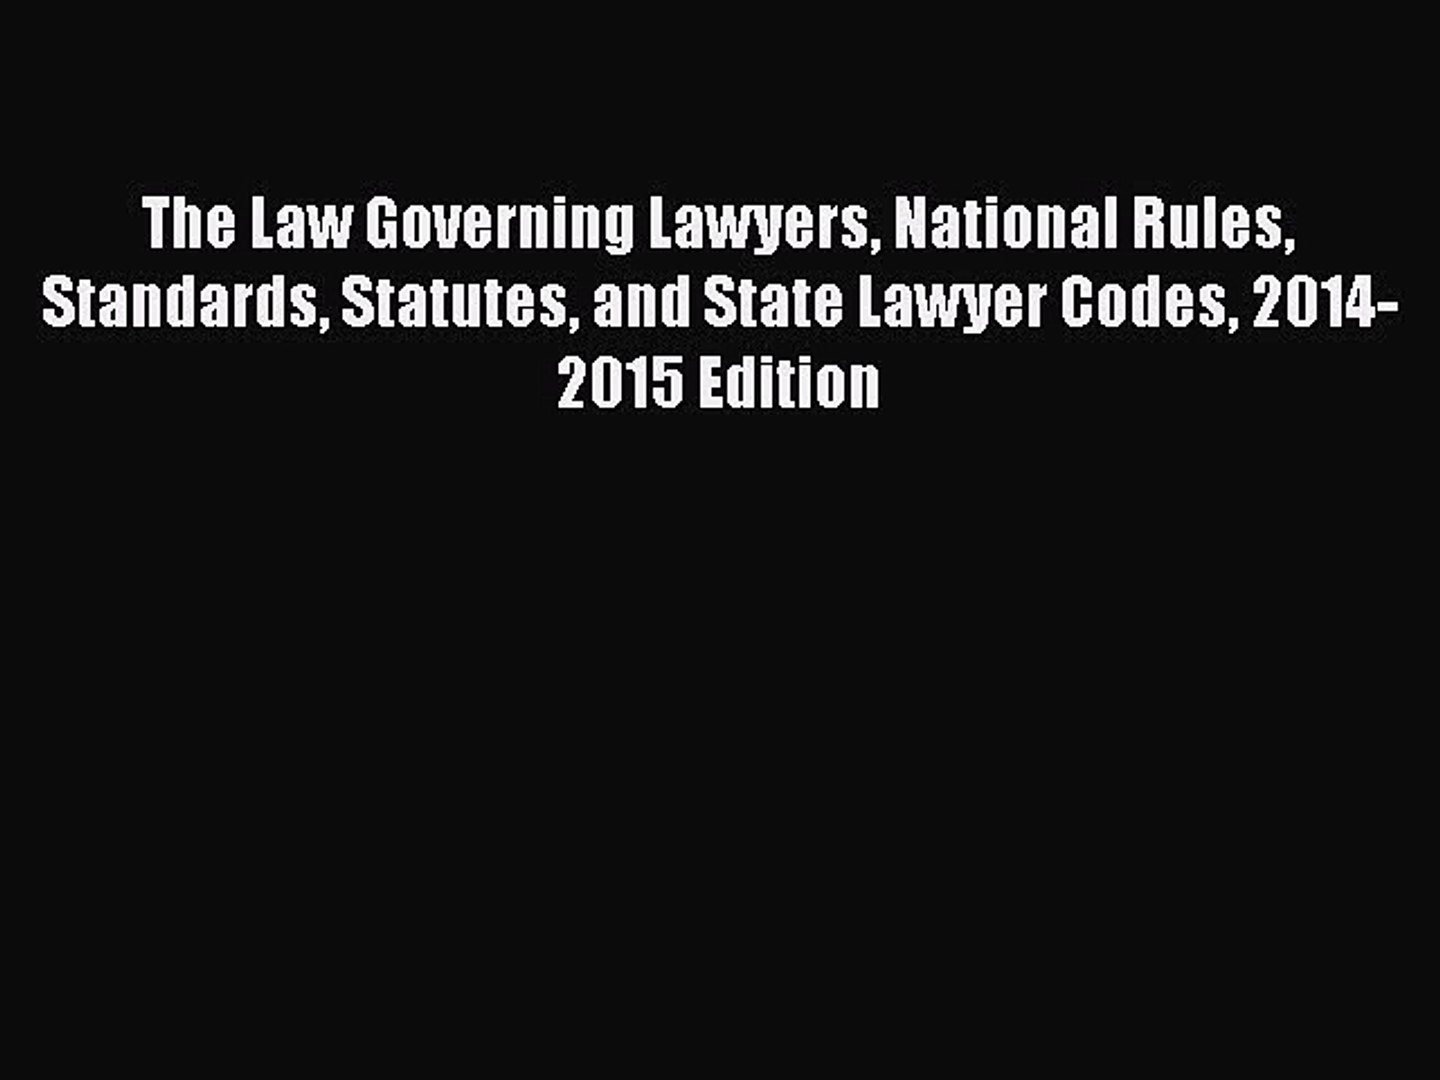 Read Book The Law Governing Lawyers National Rules Standards Statutes and State Lawyer Codes